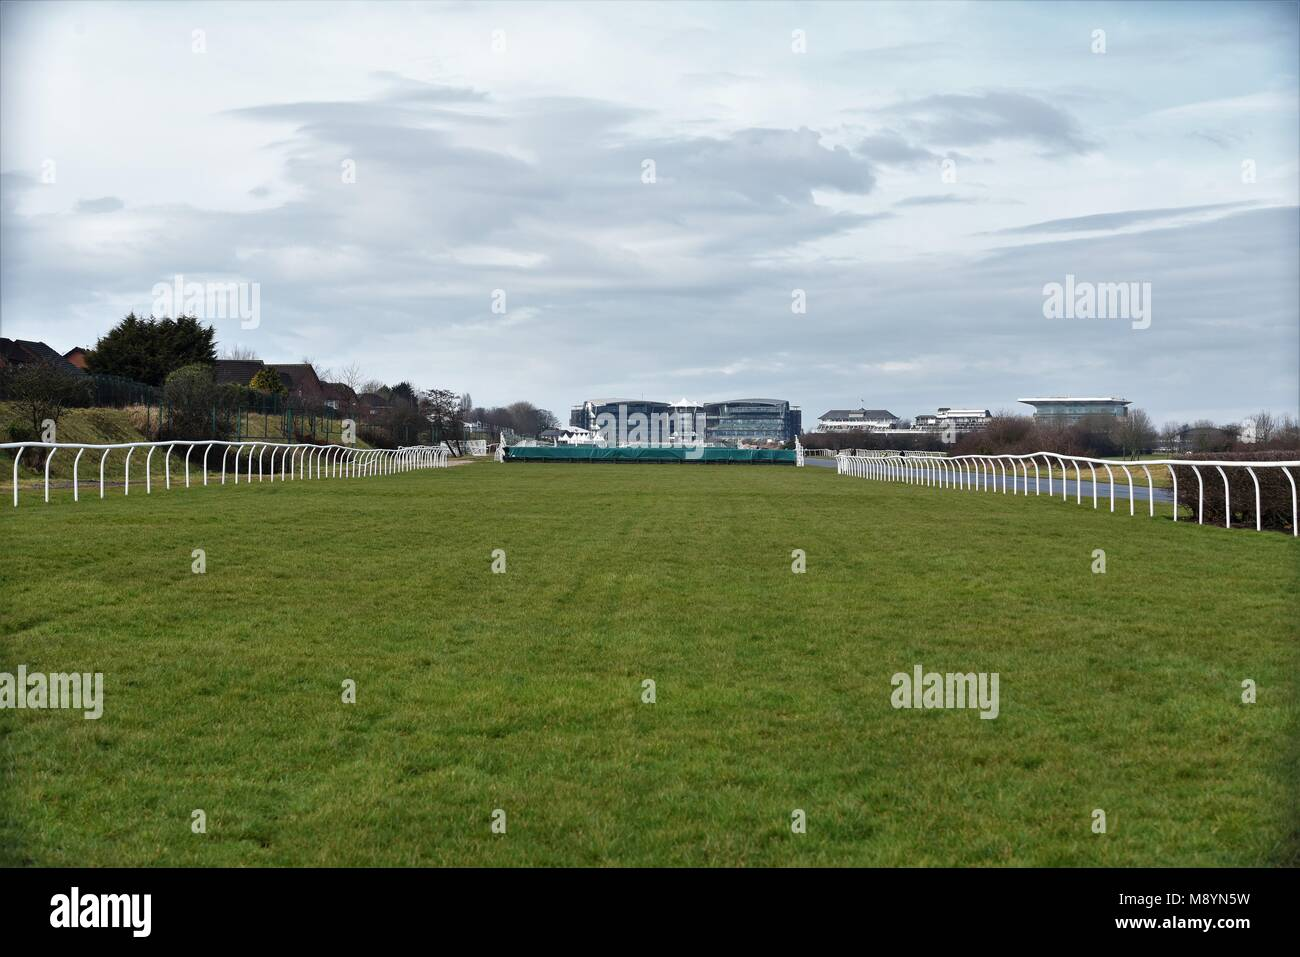 10th March 2018. Aintree Racecourse, Liverpool, UK. View of the course and grandstands  from the course itself. Stock Photo